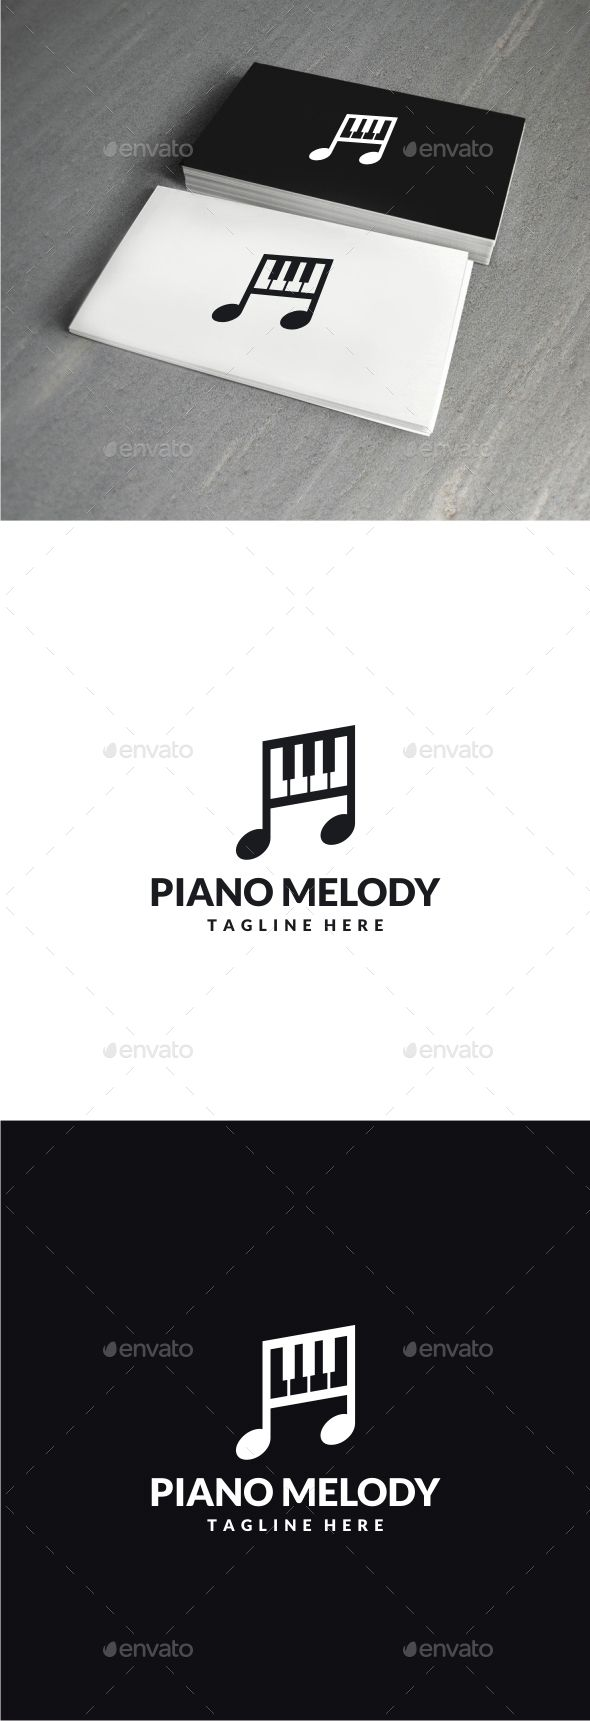 Piano Melody Logo Template Vector EPS, AI. Download here: http://graphicriver.net/item/piano-melody-logo/13984172?ref=ksioks